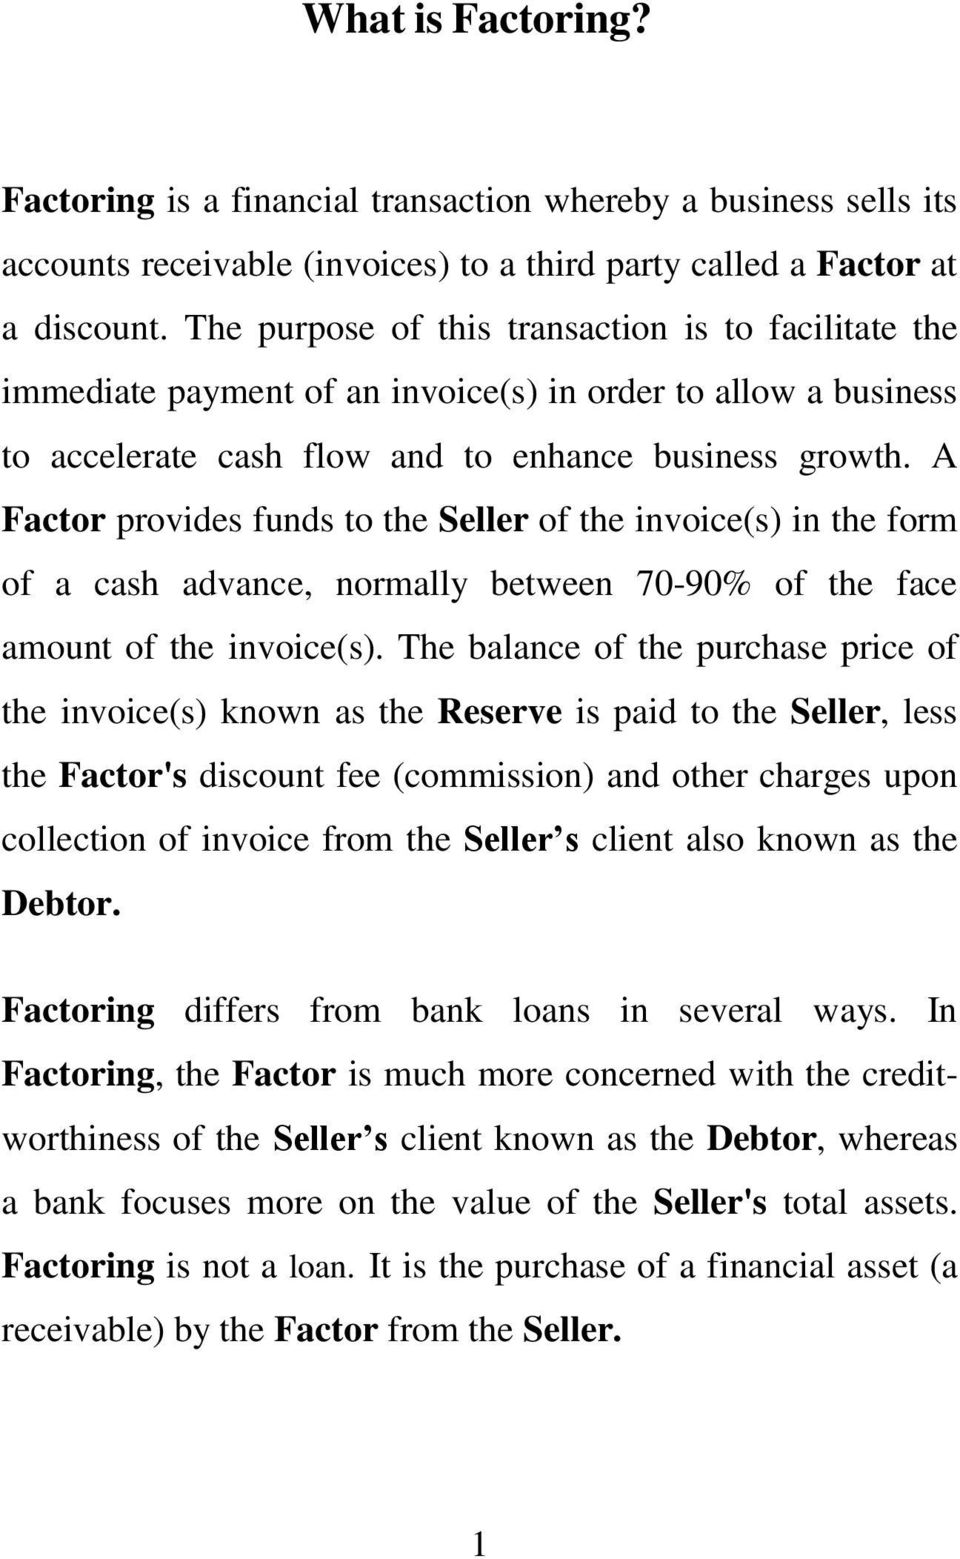 A Factor provides funds to the Seller of the invoice(s) in the form of a cash advance, normally between 70-90% of the face amount of the invoice(s).